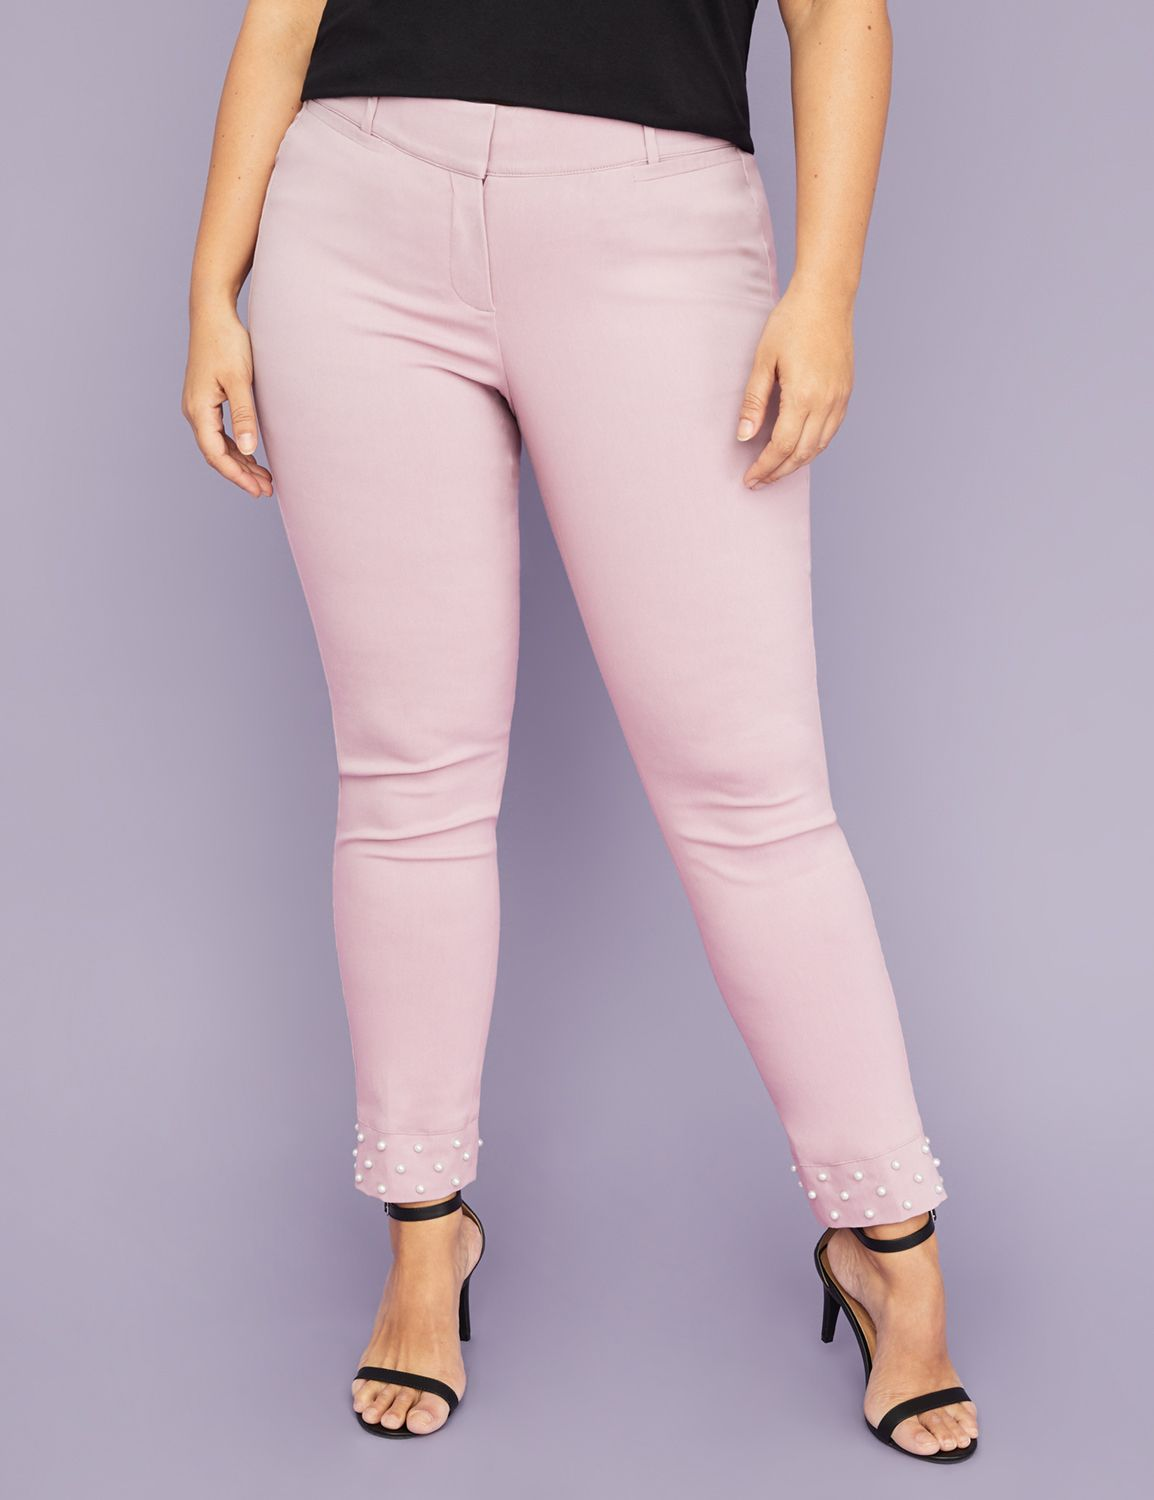 Petite Power Pockets Allie Sexy Stretch Ankle Pant - Pearl Hem